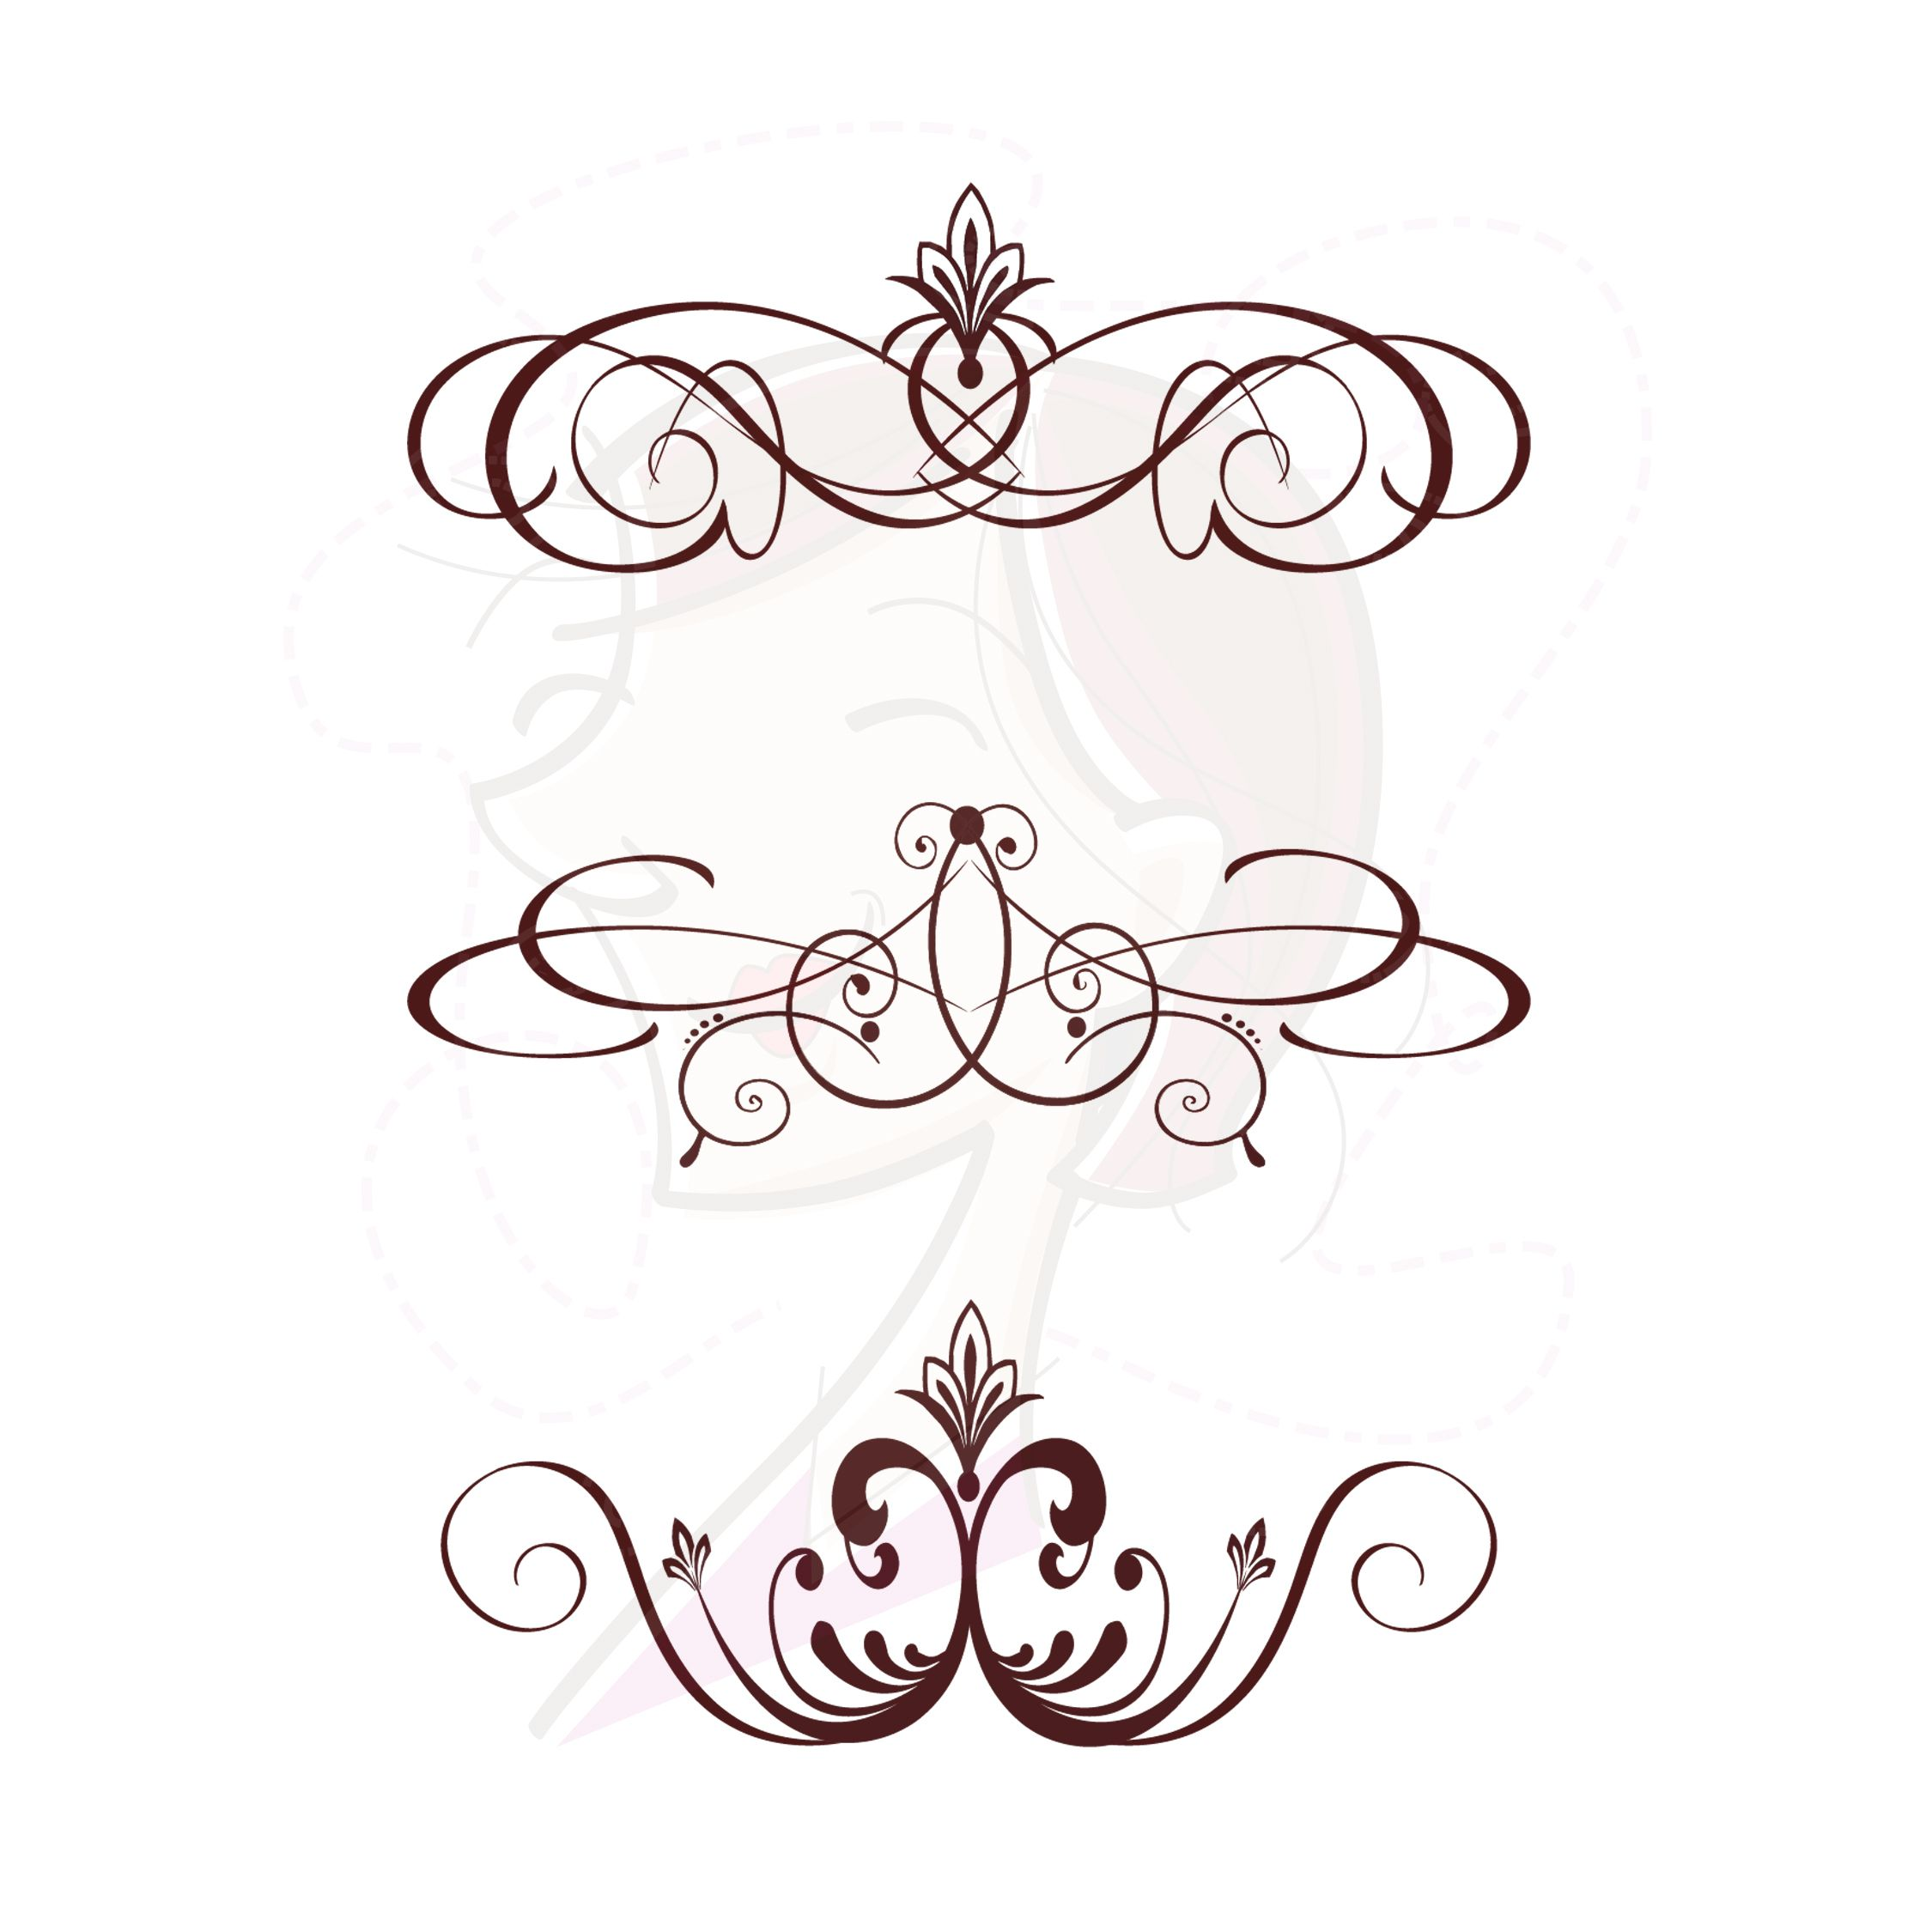 flourish vector vintage clip art dark brown floral swirls rh pinterest com flourish clipart images flourish clipart images